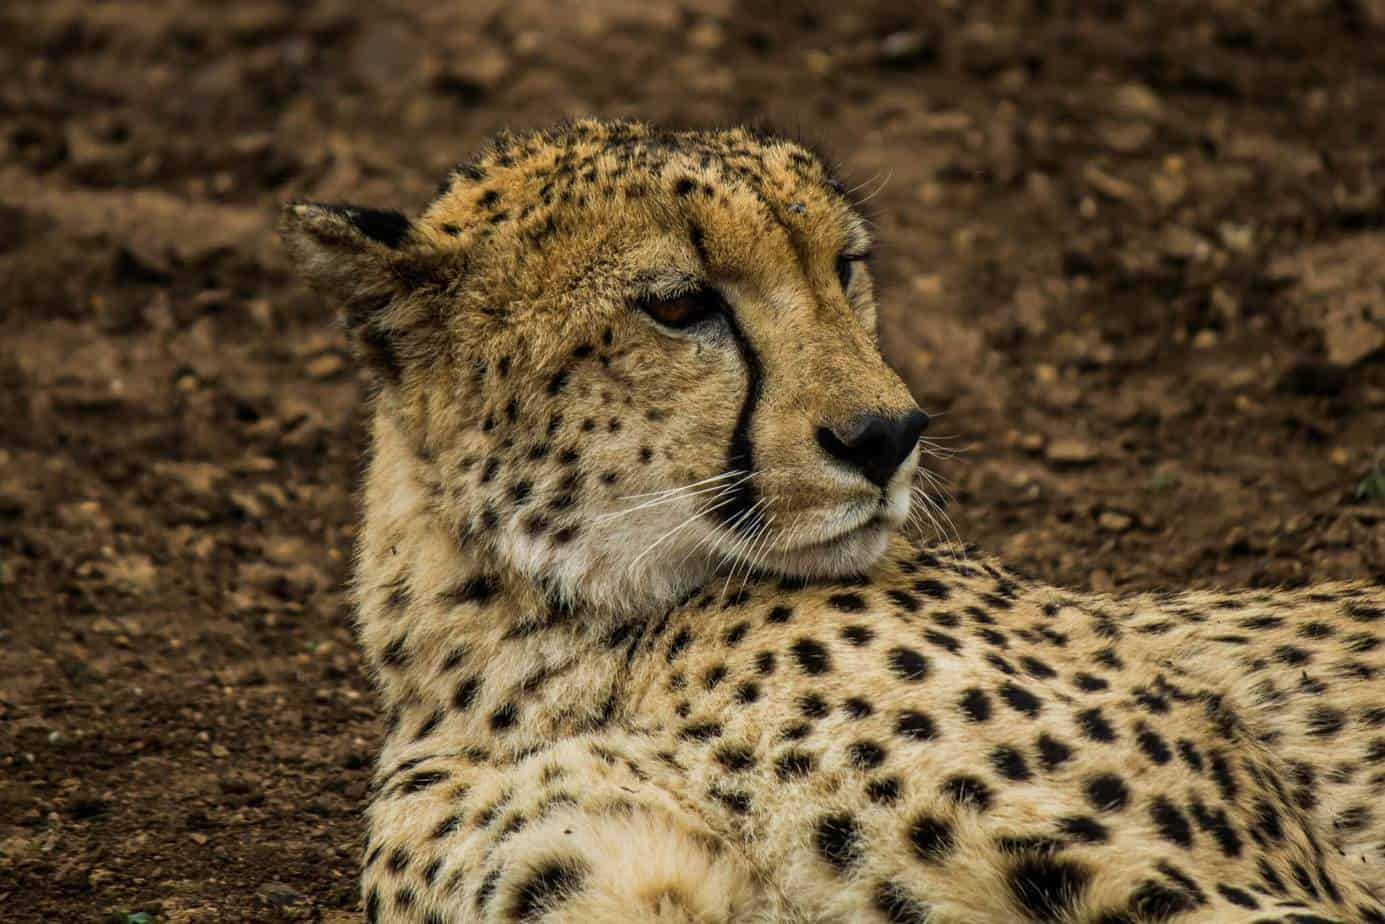 IMG 1169 - My African Top 5 - Photography Moments